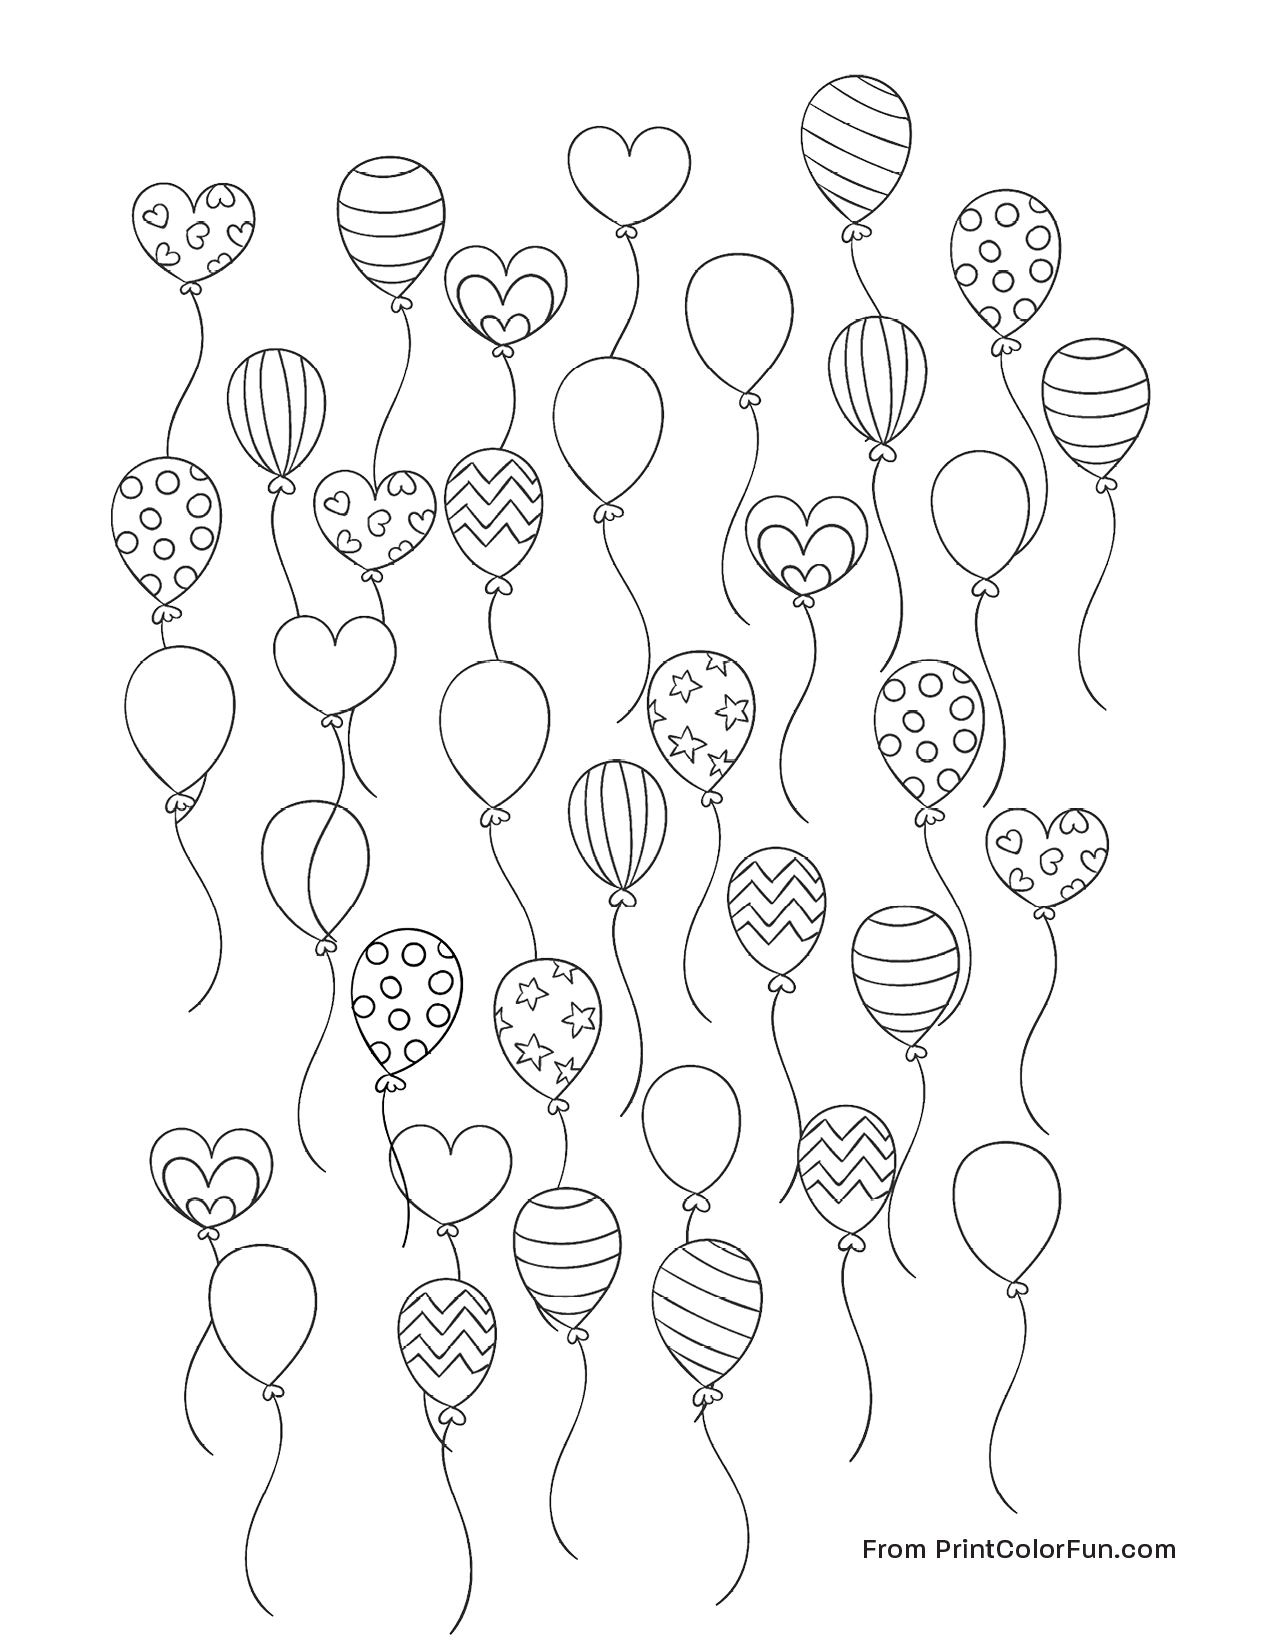 Lots of party balloons coloring page - Print. Color. Fun!